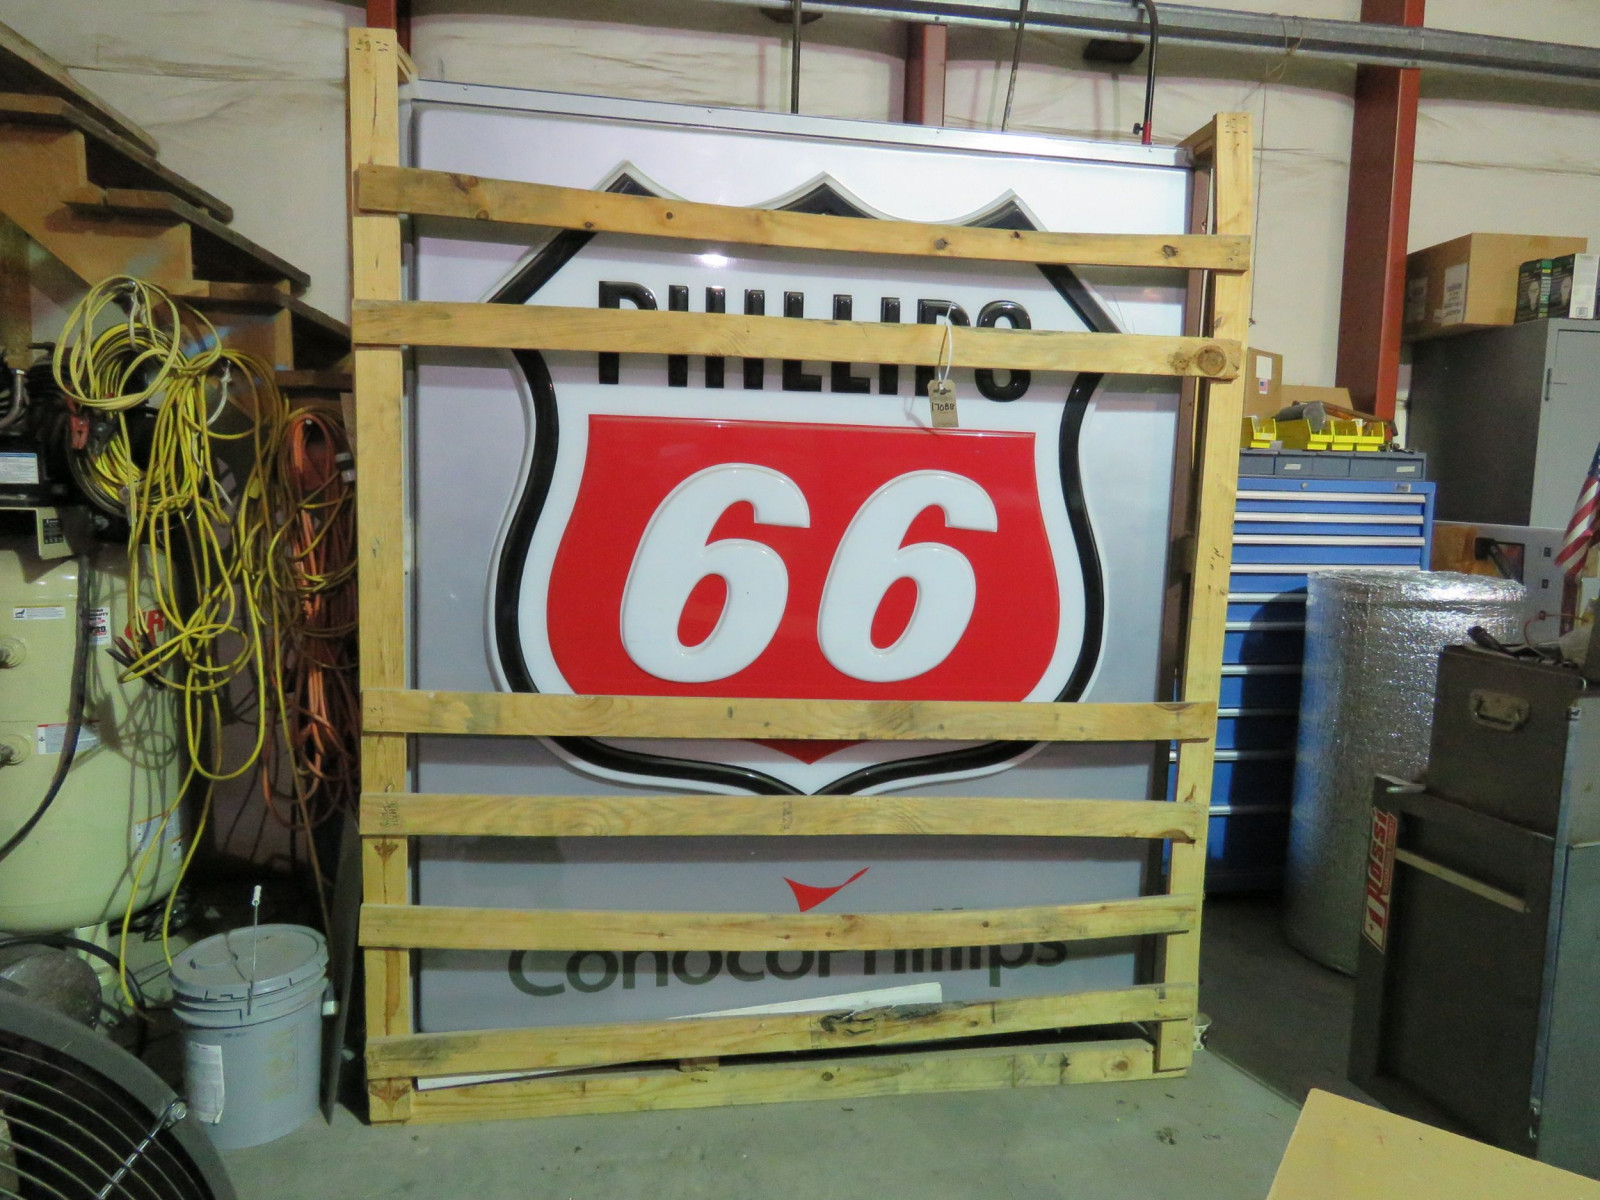 Phillips 66 DS Plastic Lighted Sign - Image 1